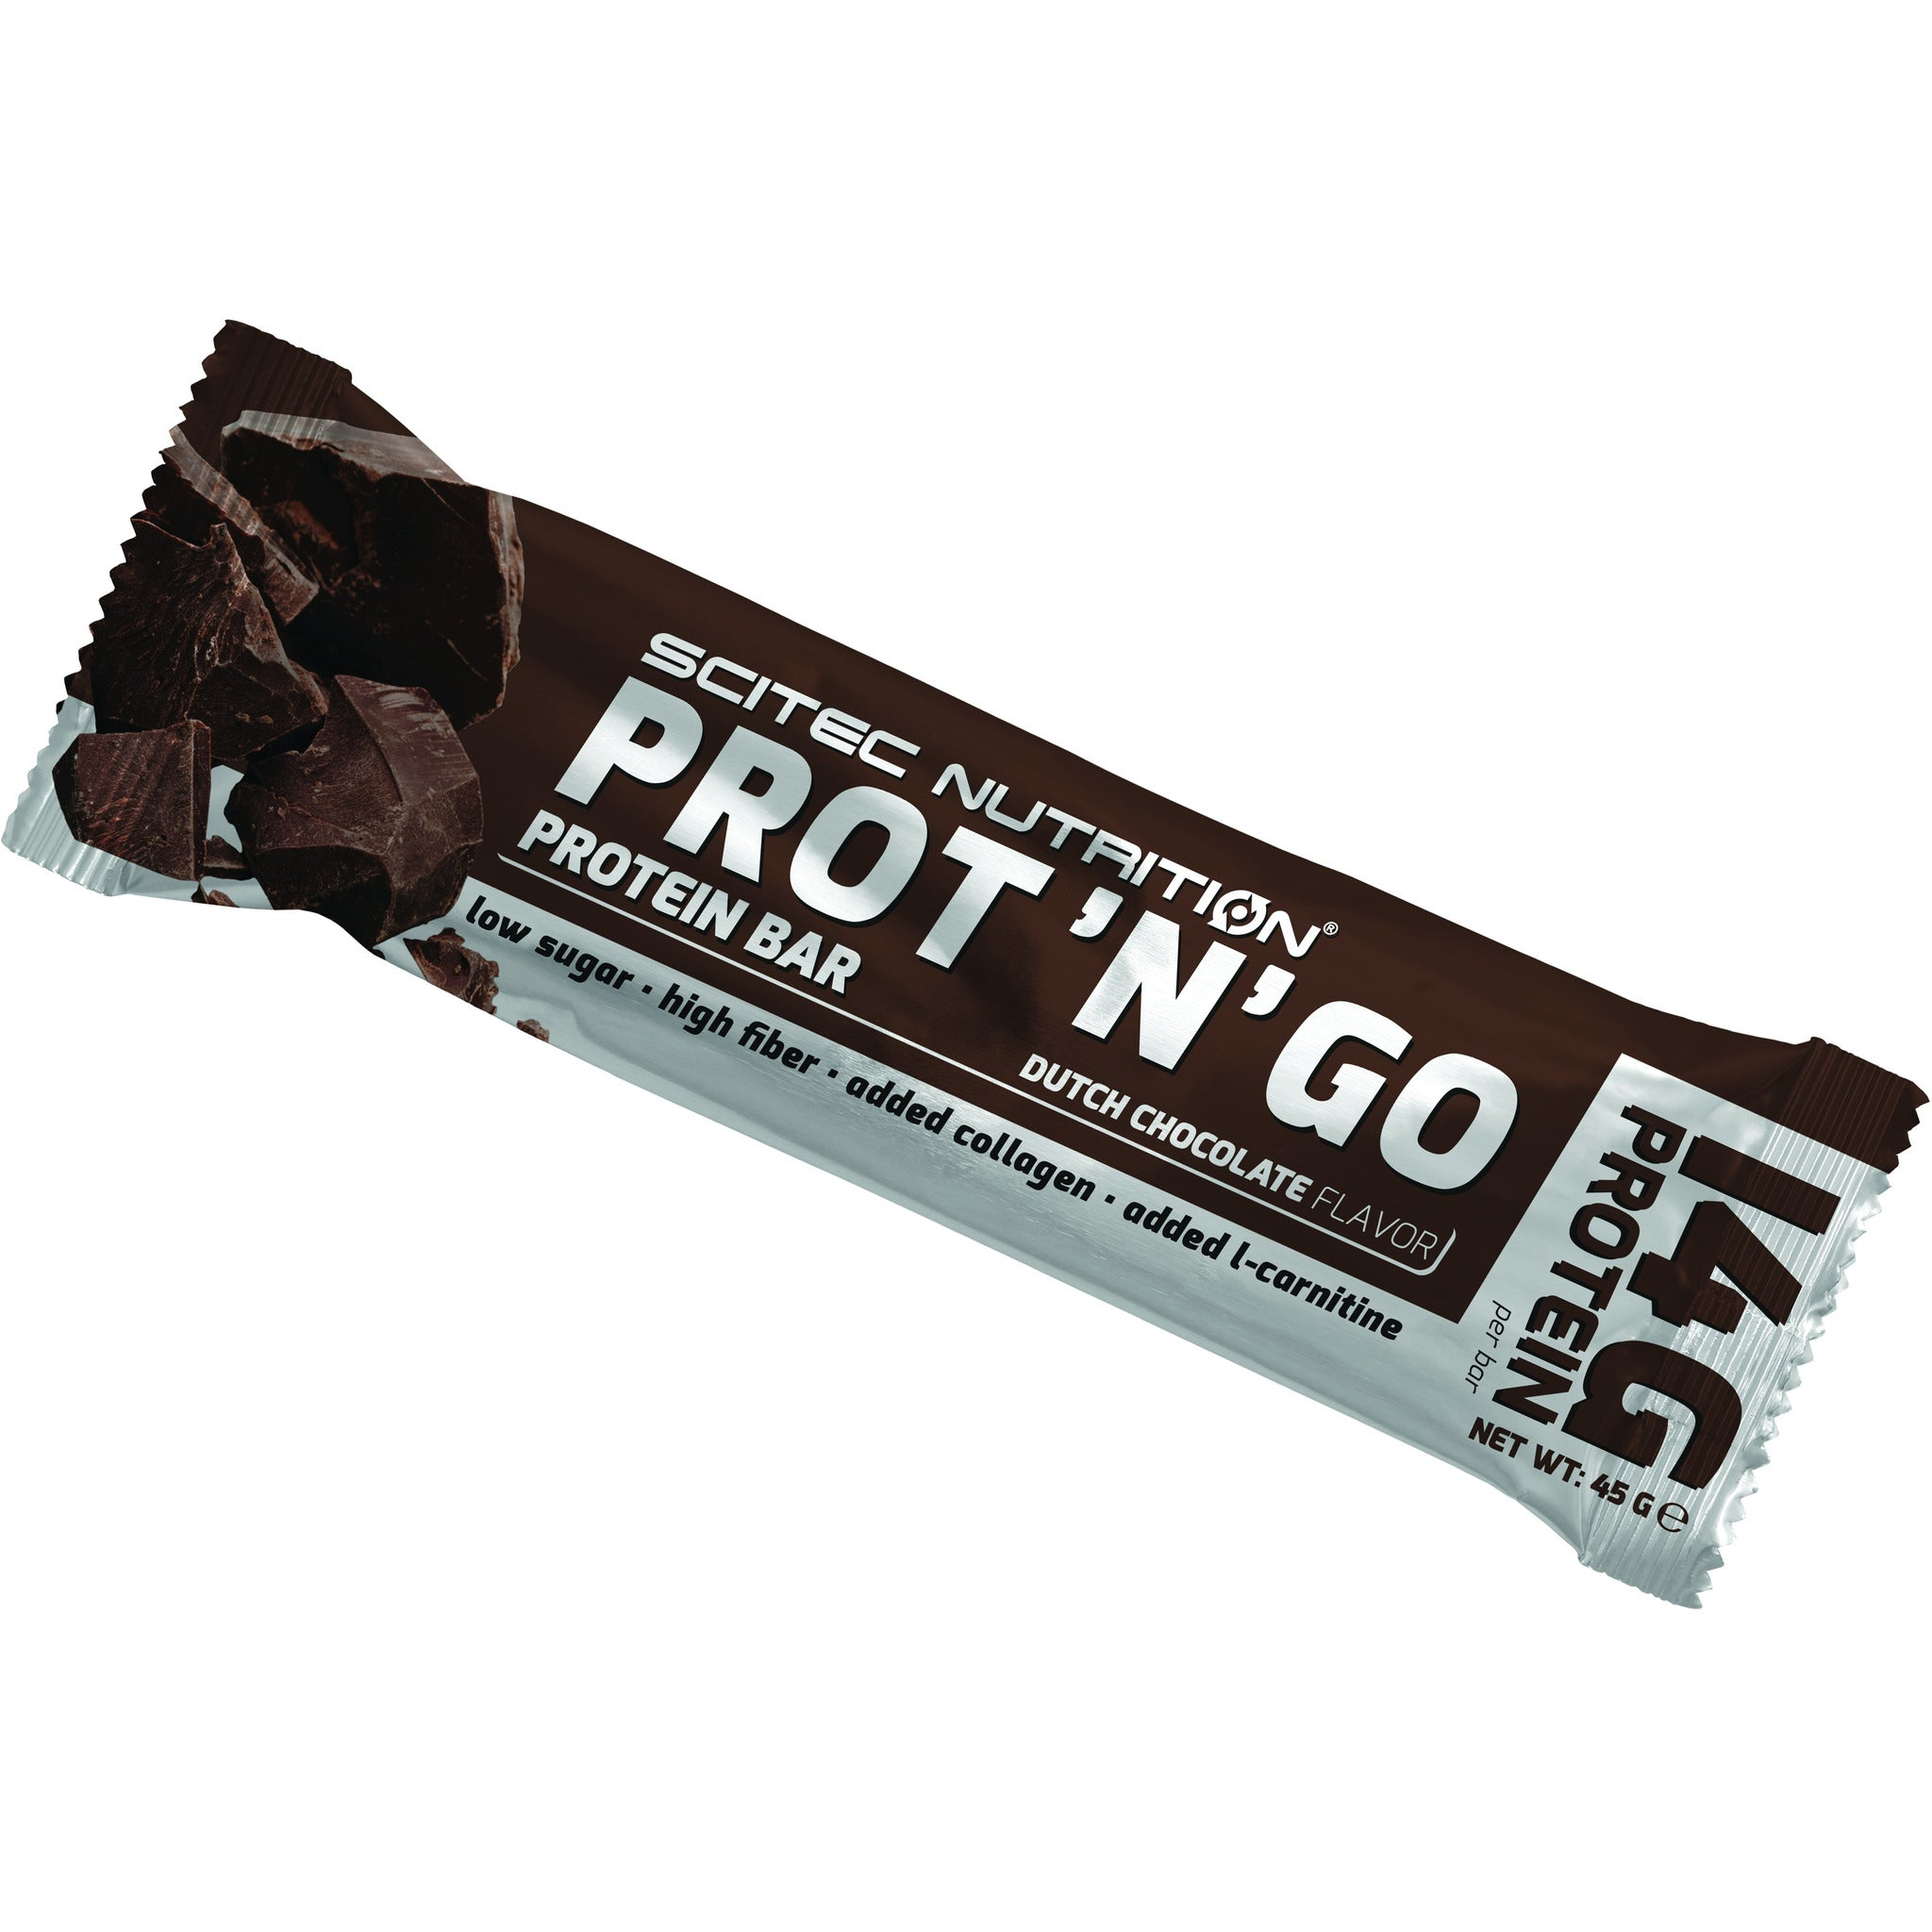 Brand New: PROT'N'GO Protein Bar 45G - With Collagen